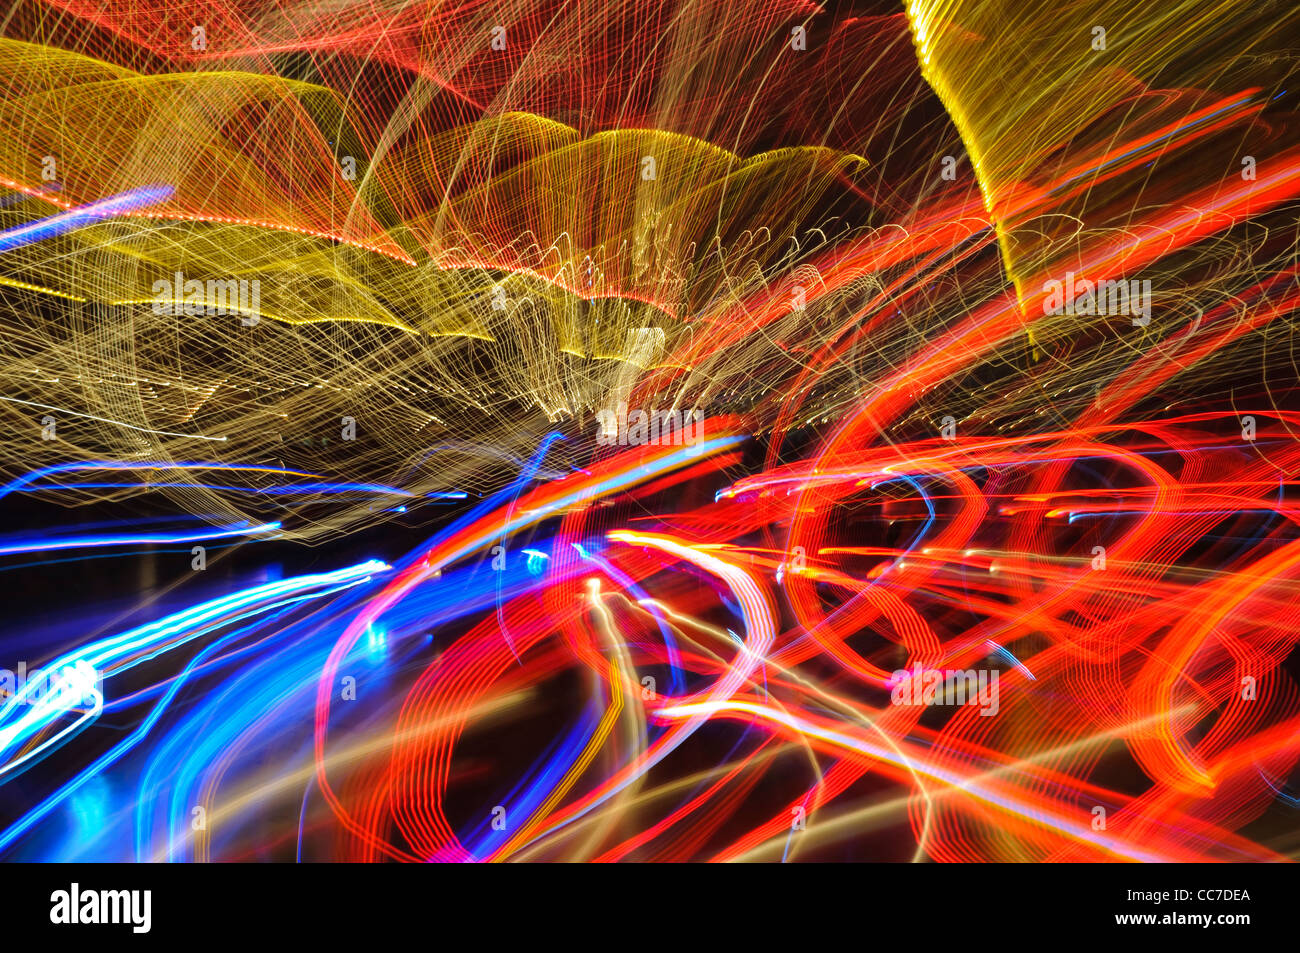 Bumper cars, carousel, light trails, fairground, Erfurt, Thuringia, Germany, Europe - Stock Image